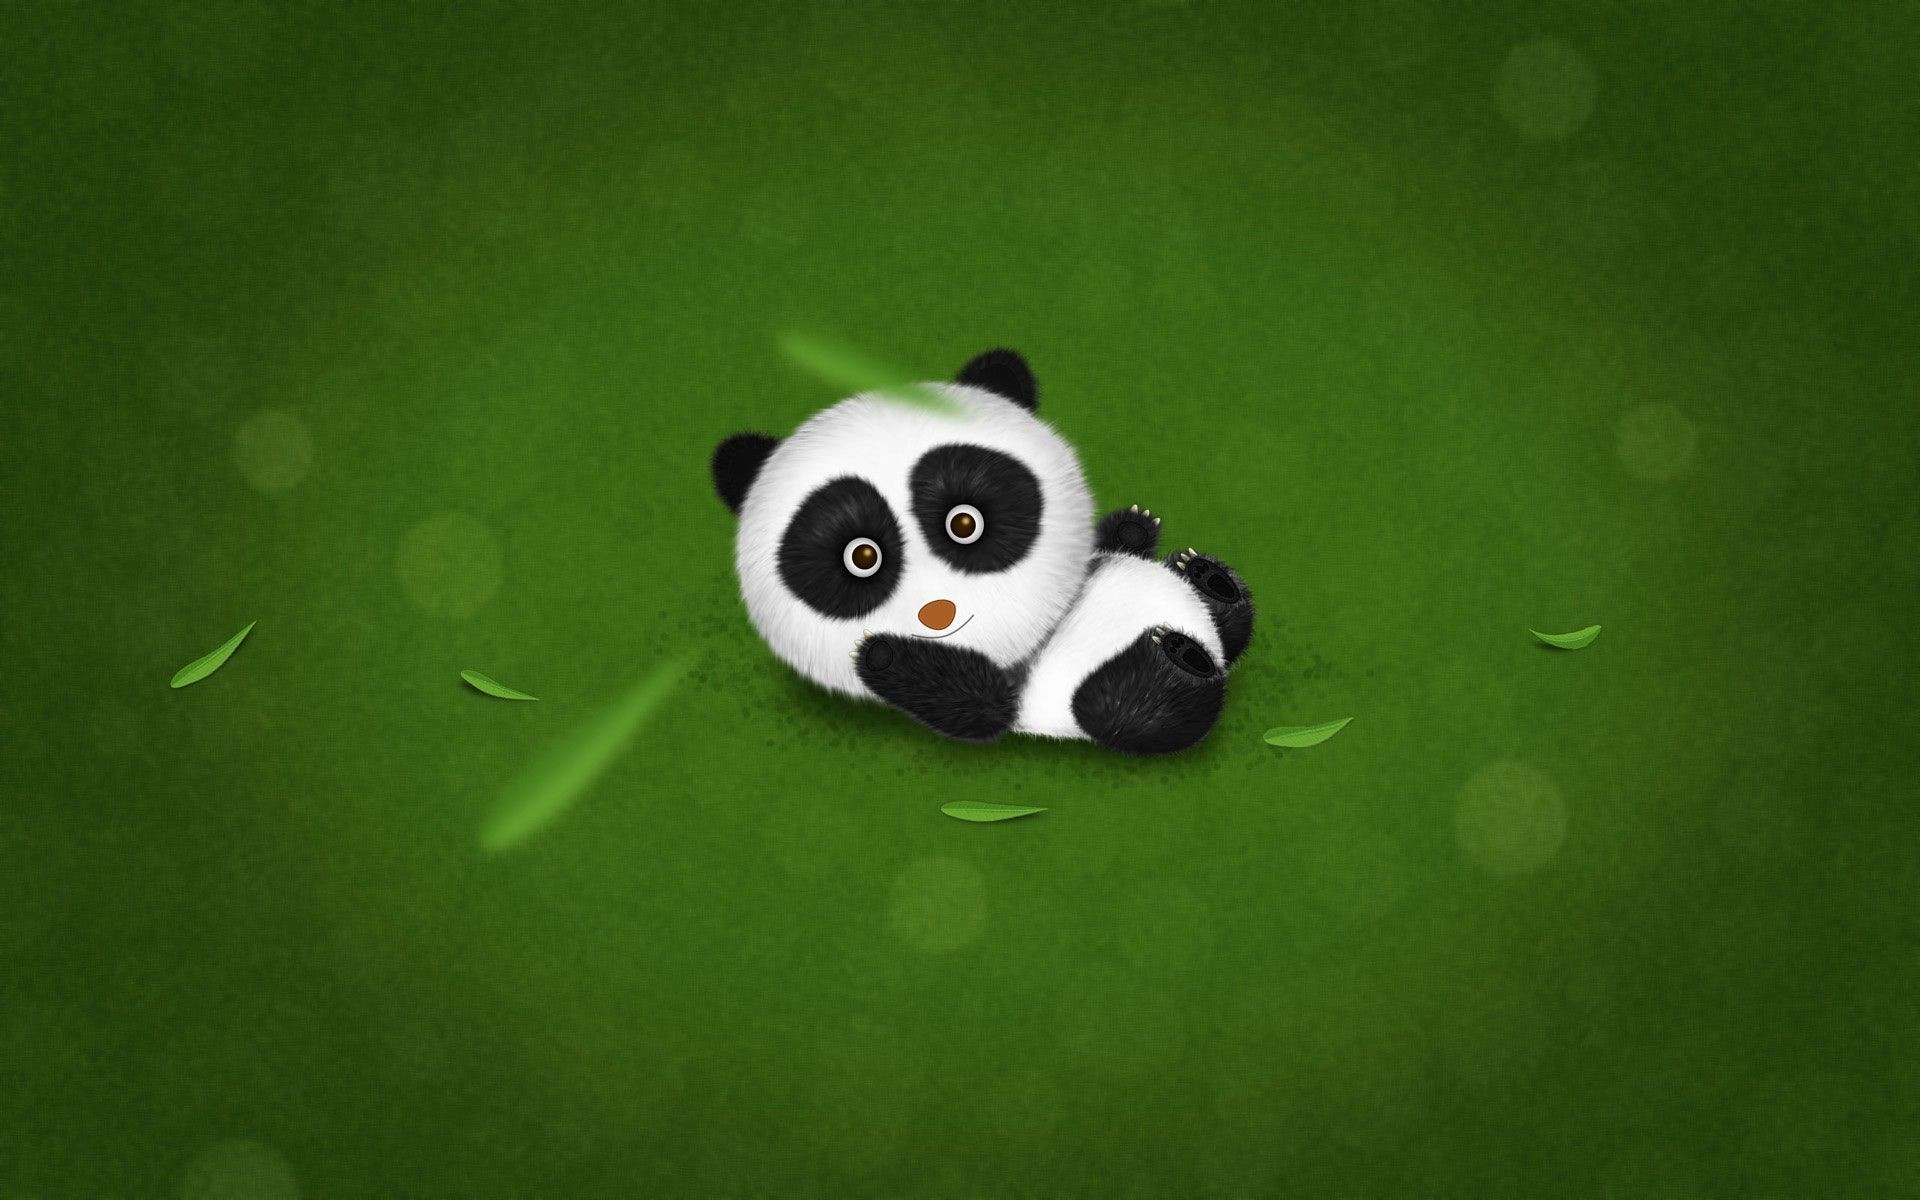 Cute Panda Wallpapers Android Apps on Google Play 1920×1200 Panda Images  Wallpapers (34